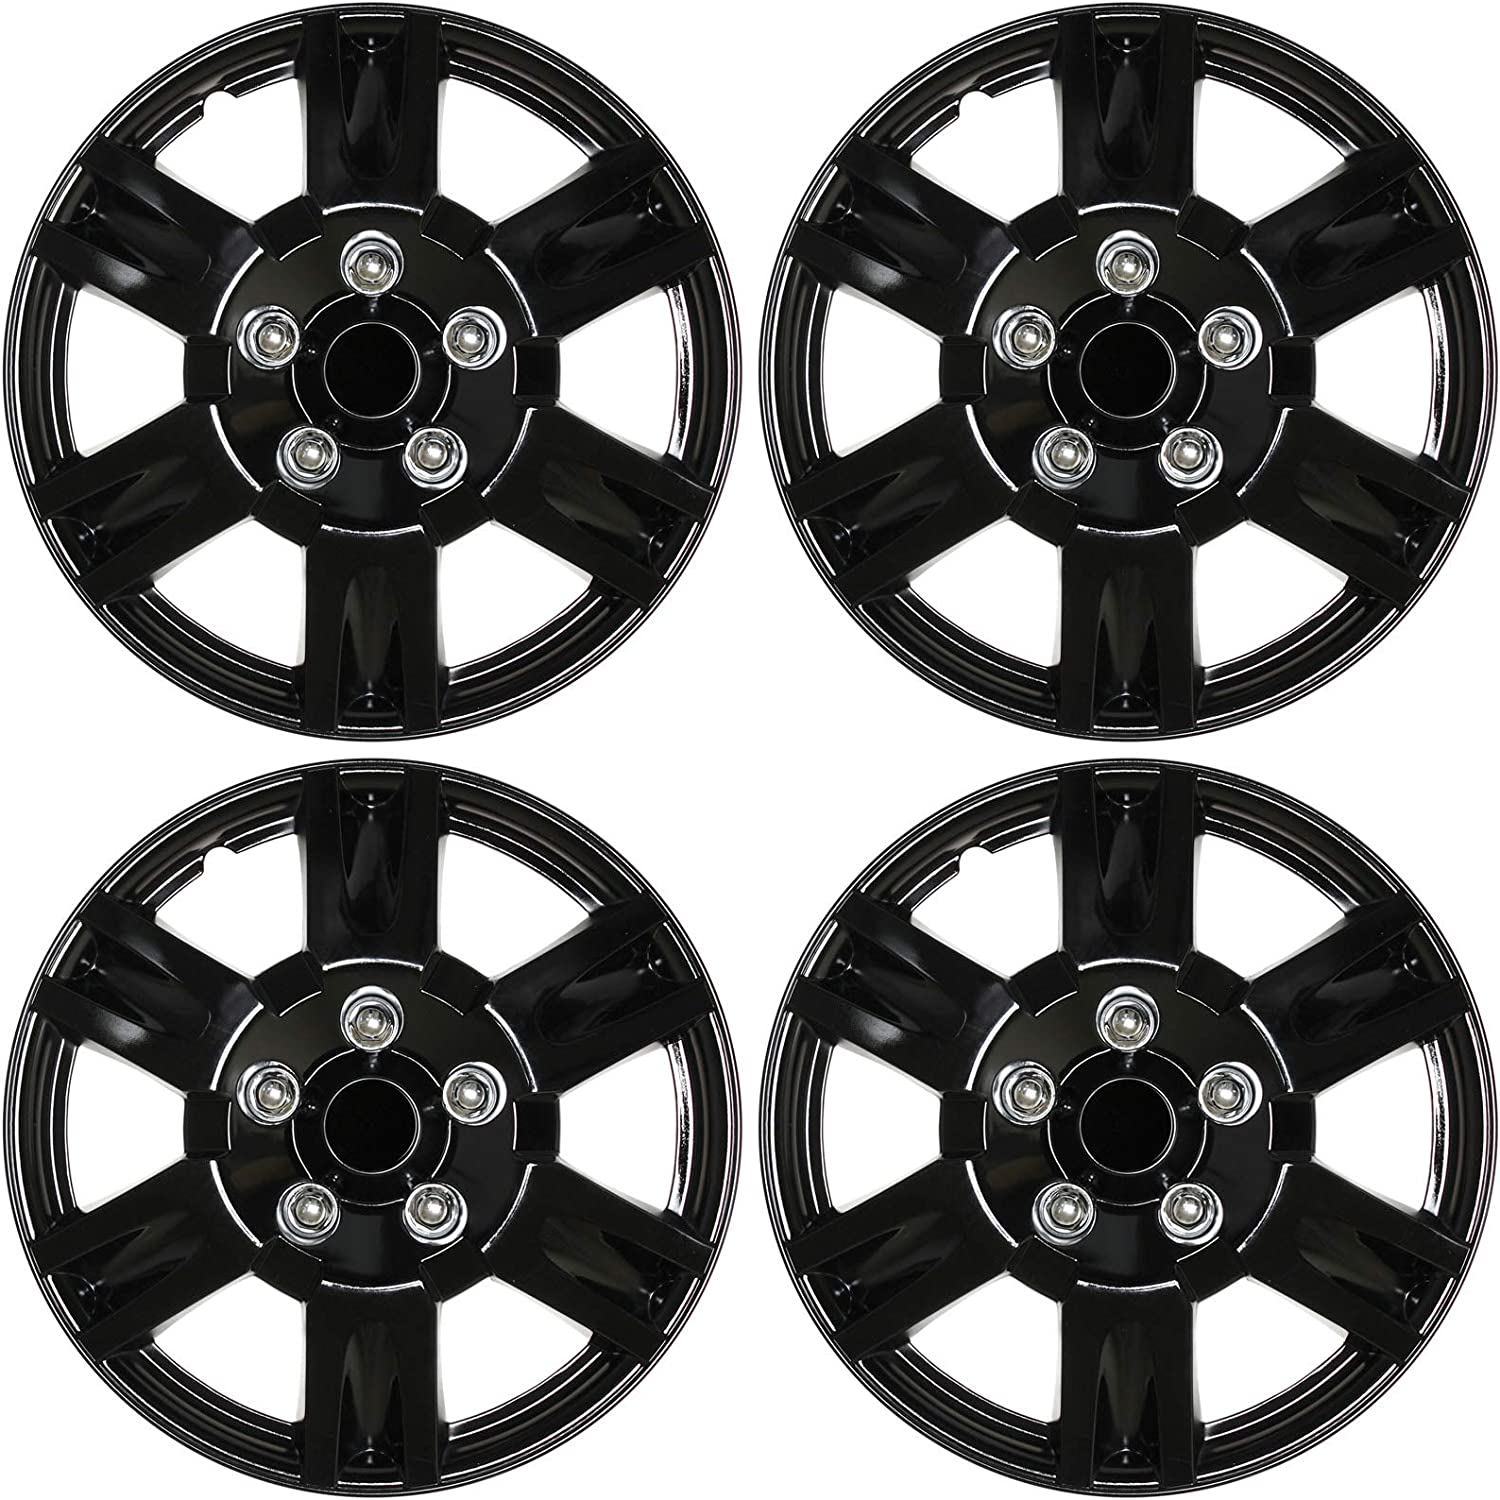 Cover Trend Max 47% OFF Set of 4 Ice Hubc Shiny Black Reservation Aftermarket 15